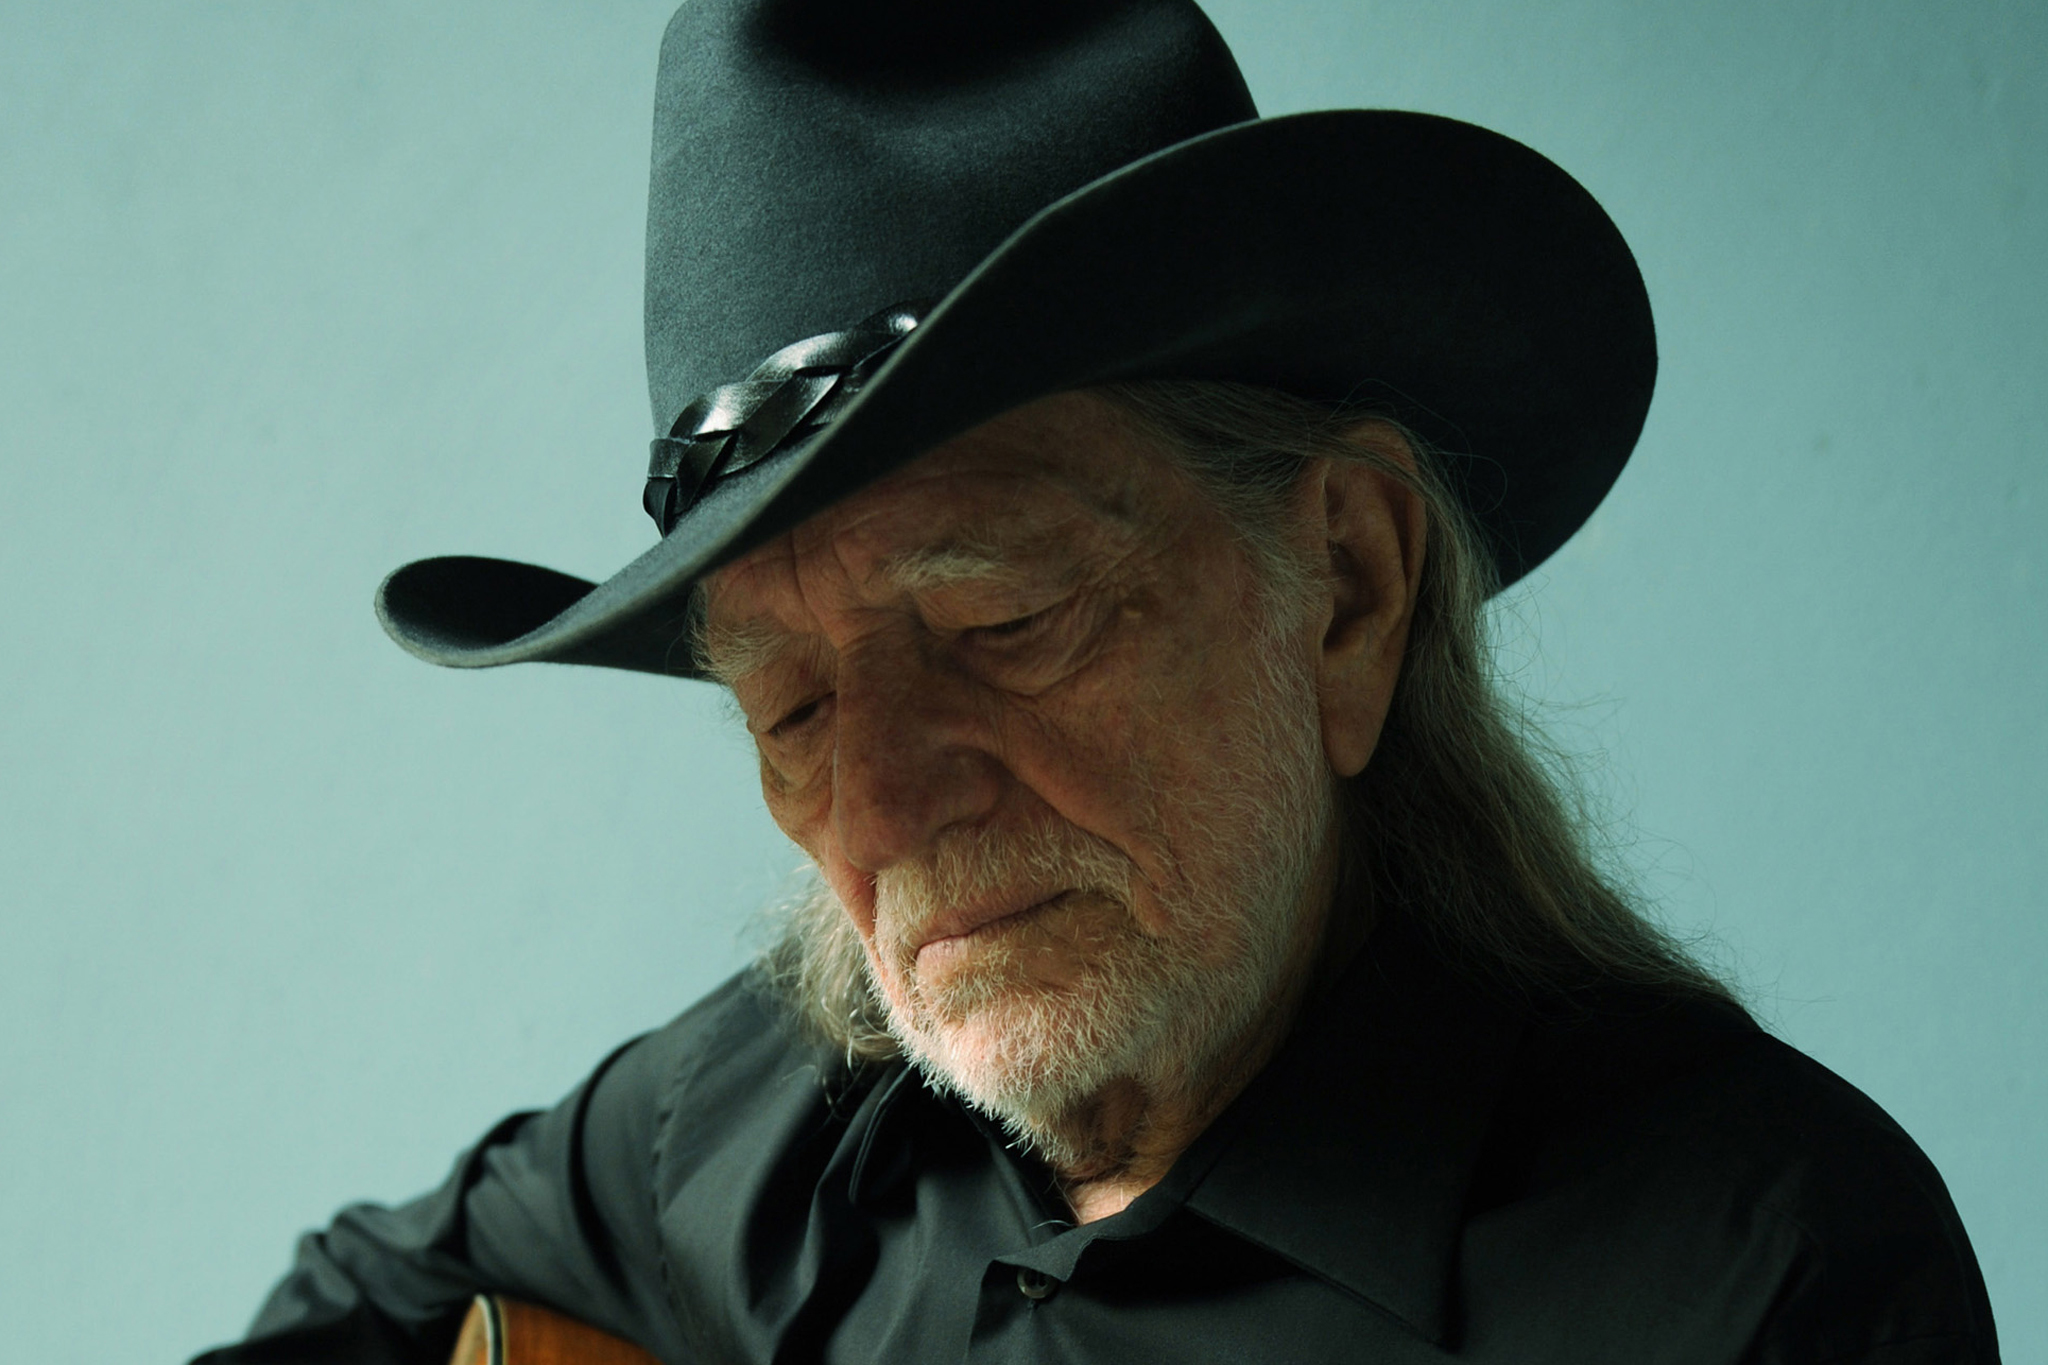 Willie Nelson & Family + Alison Krauss & Union Station featuring Jerry Douglas + Kacey Musgraves